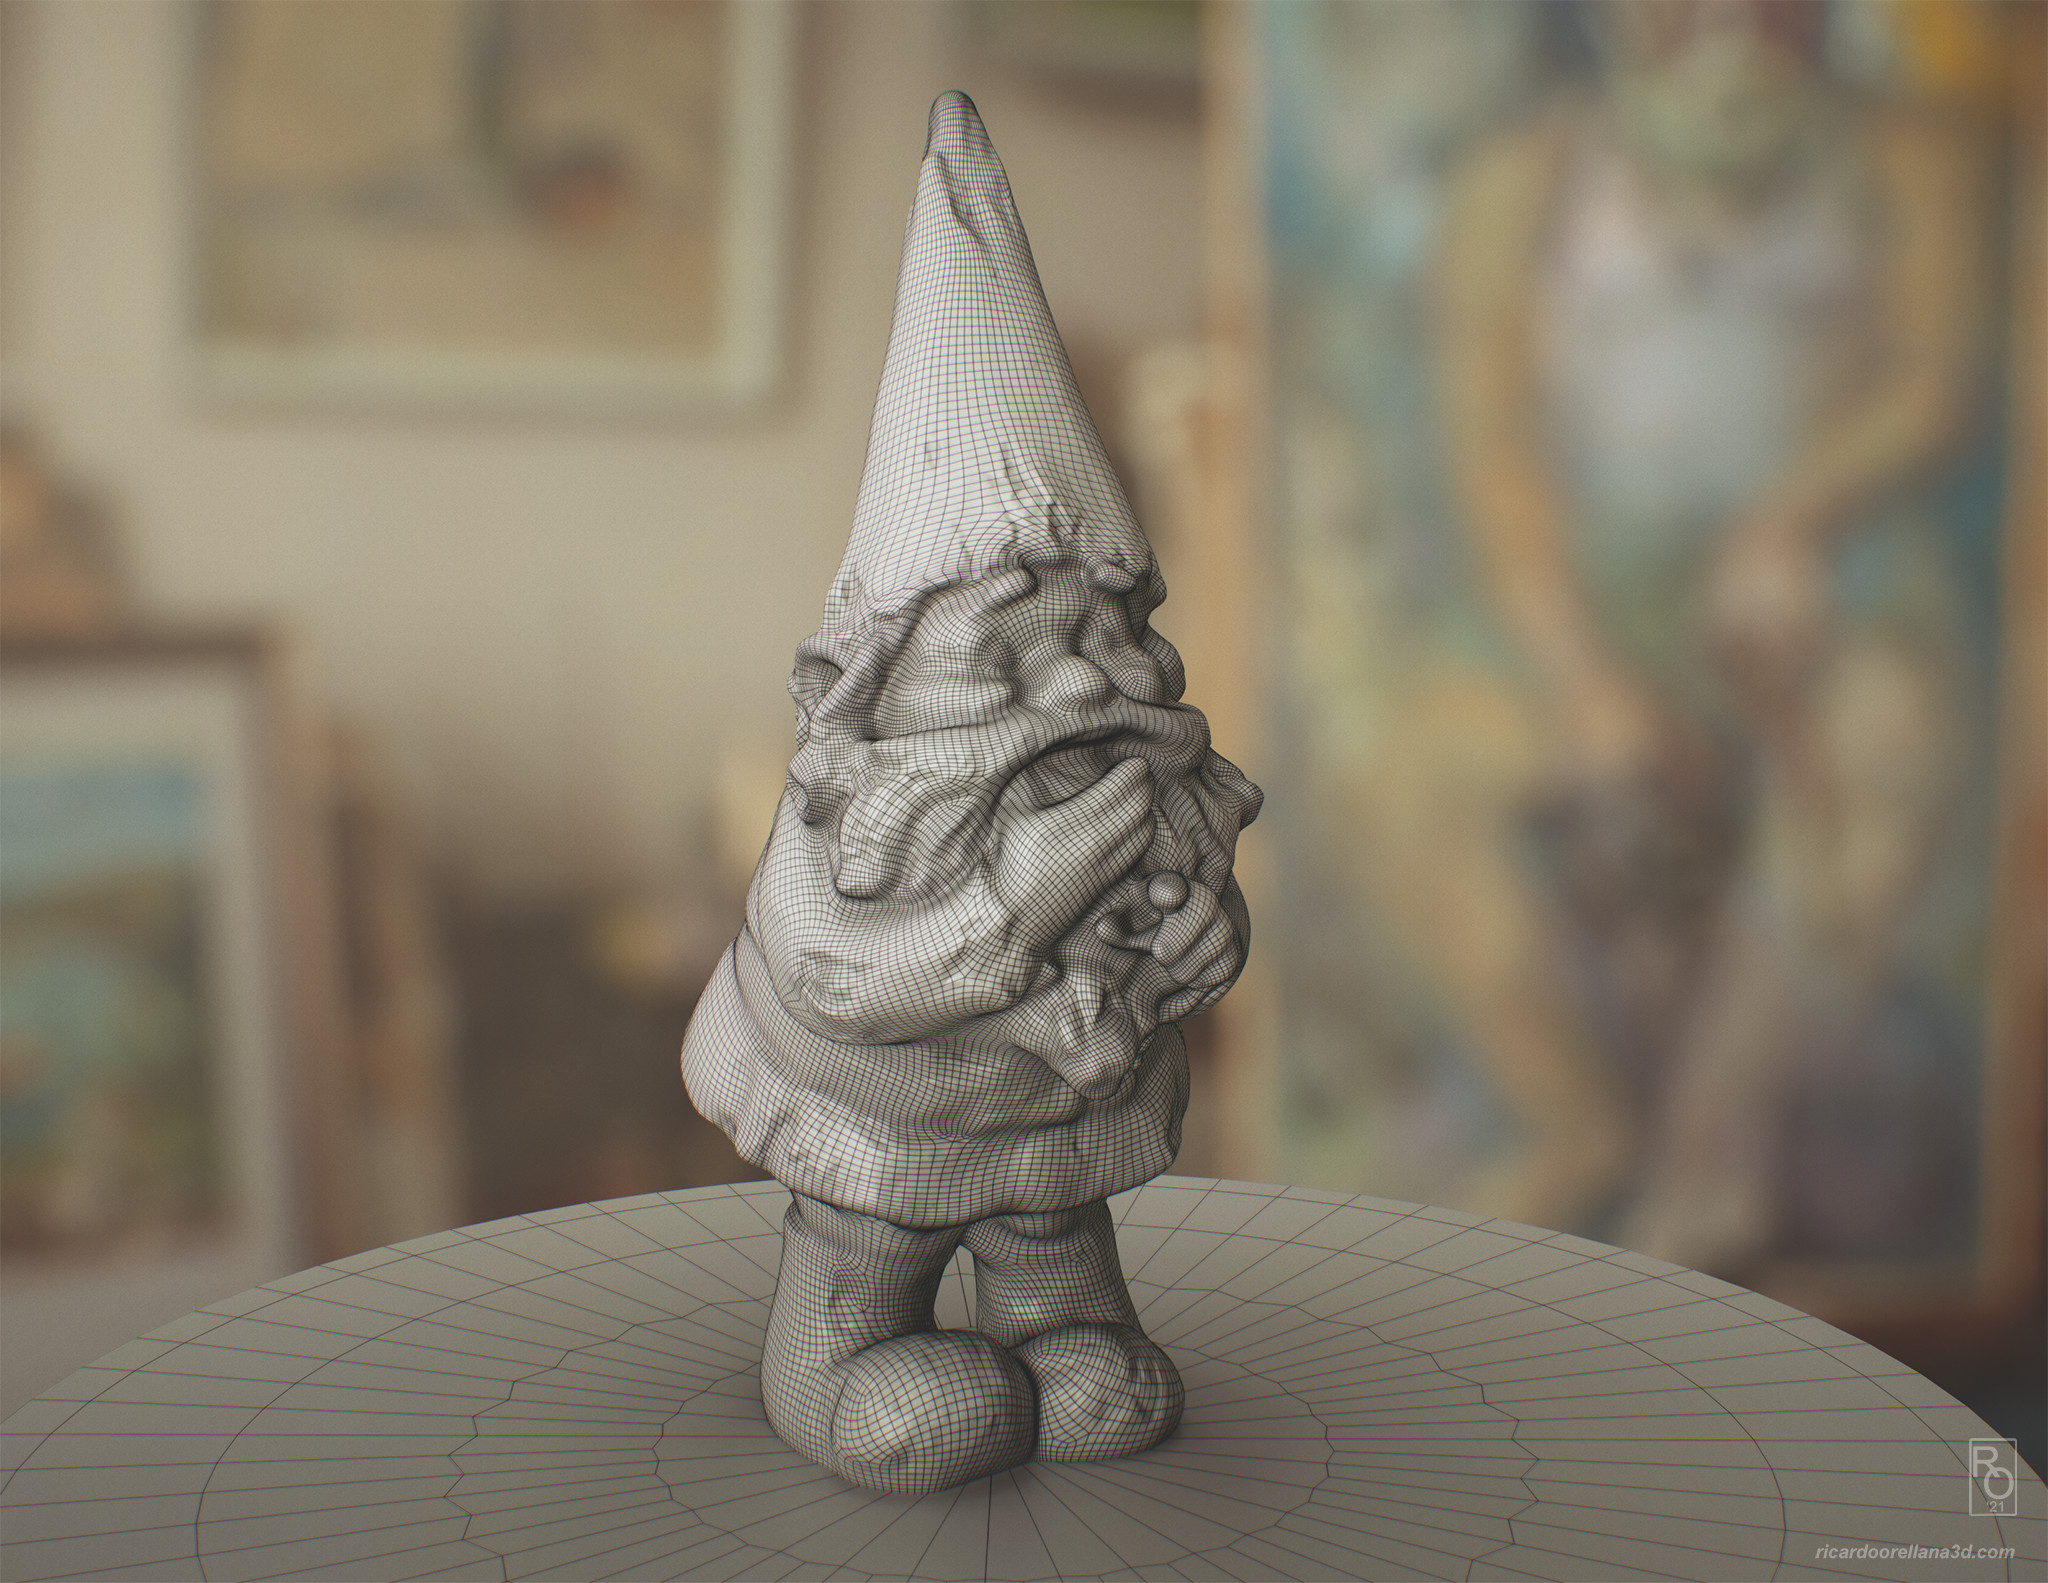 Gnome mesh reconstructed in Zbrush via ZRemesher with subdivision level 2 used for the render